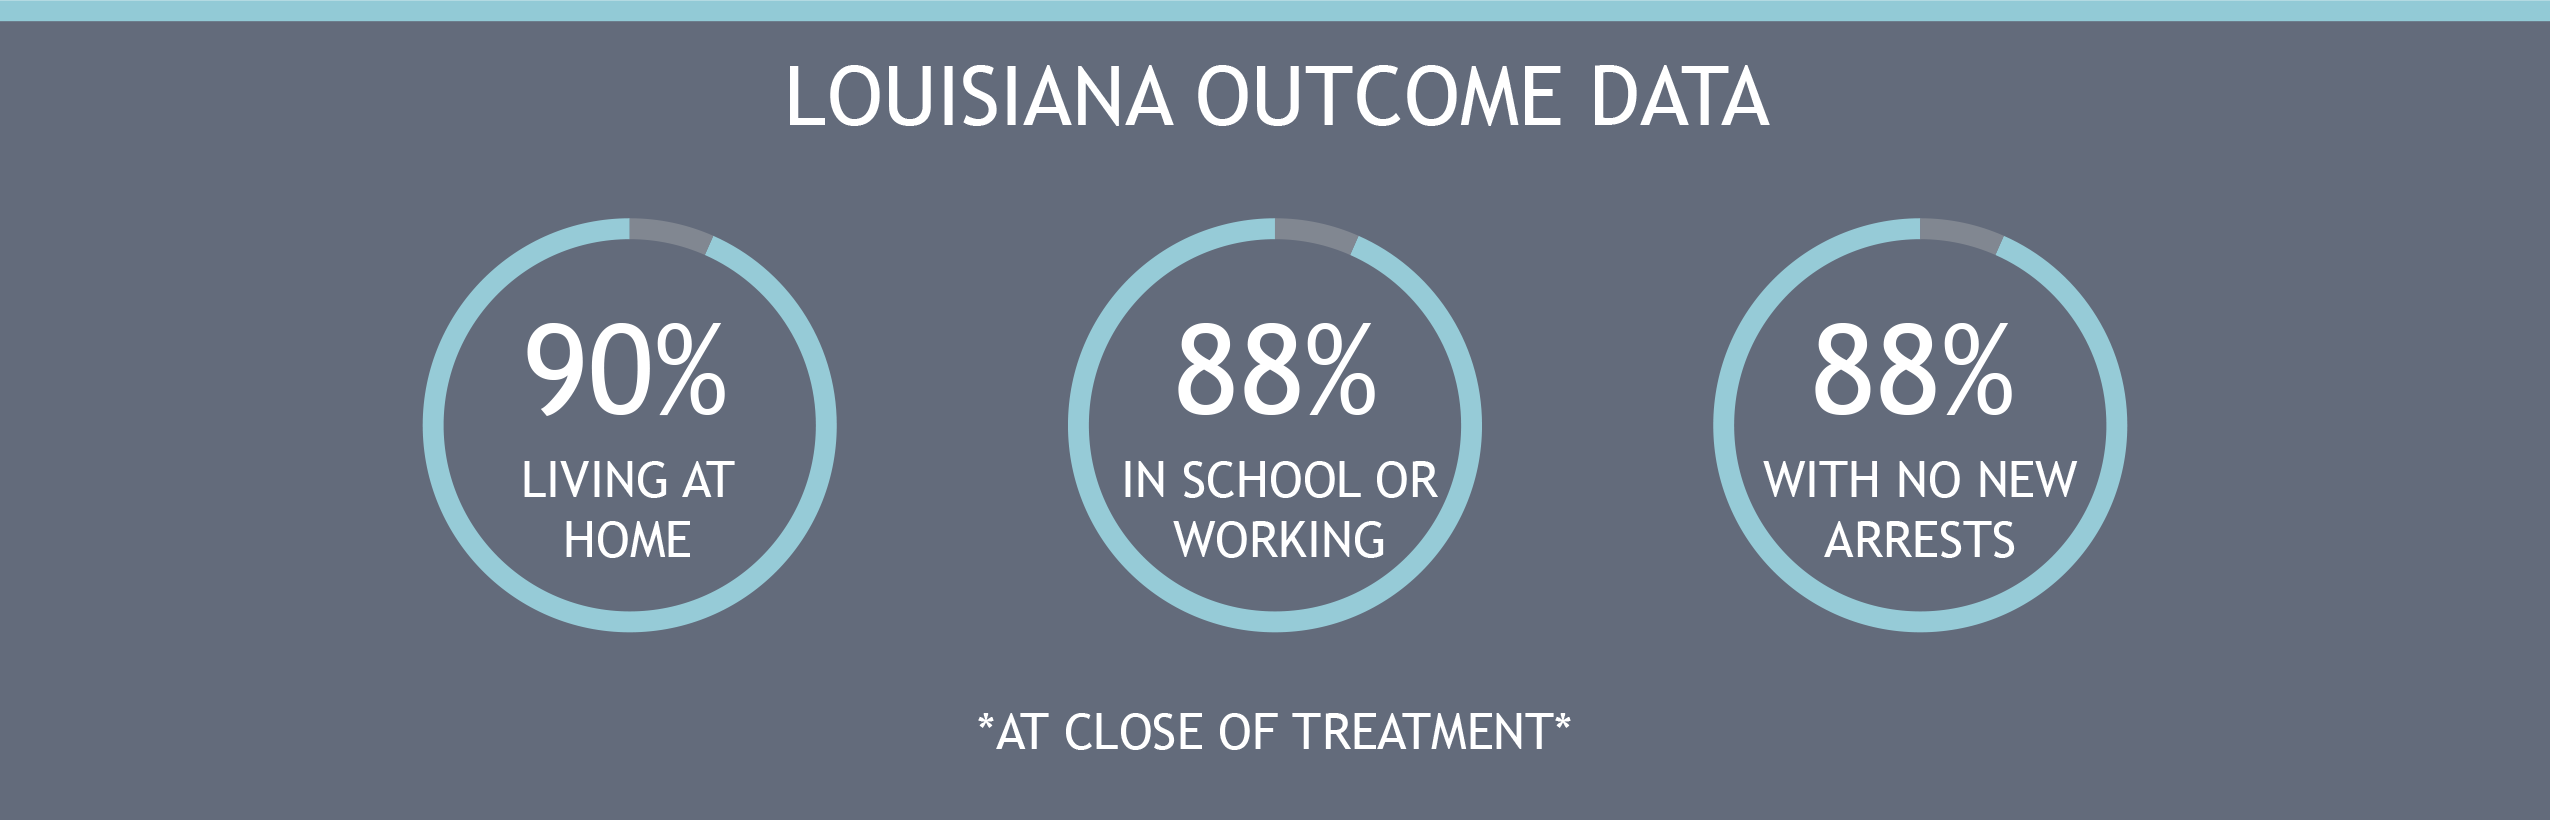 Louisiana outcome data